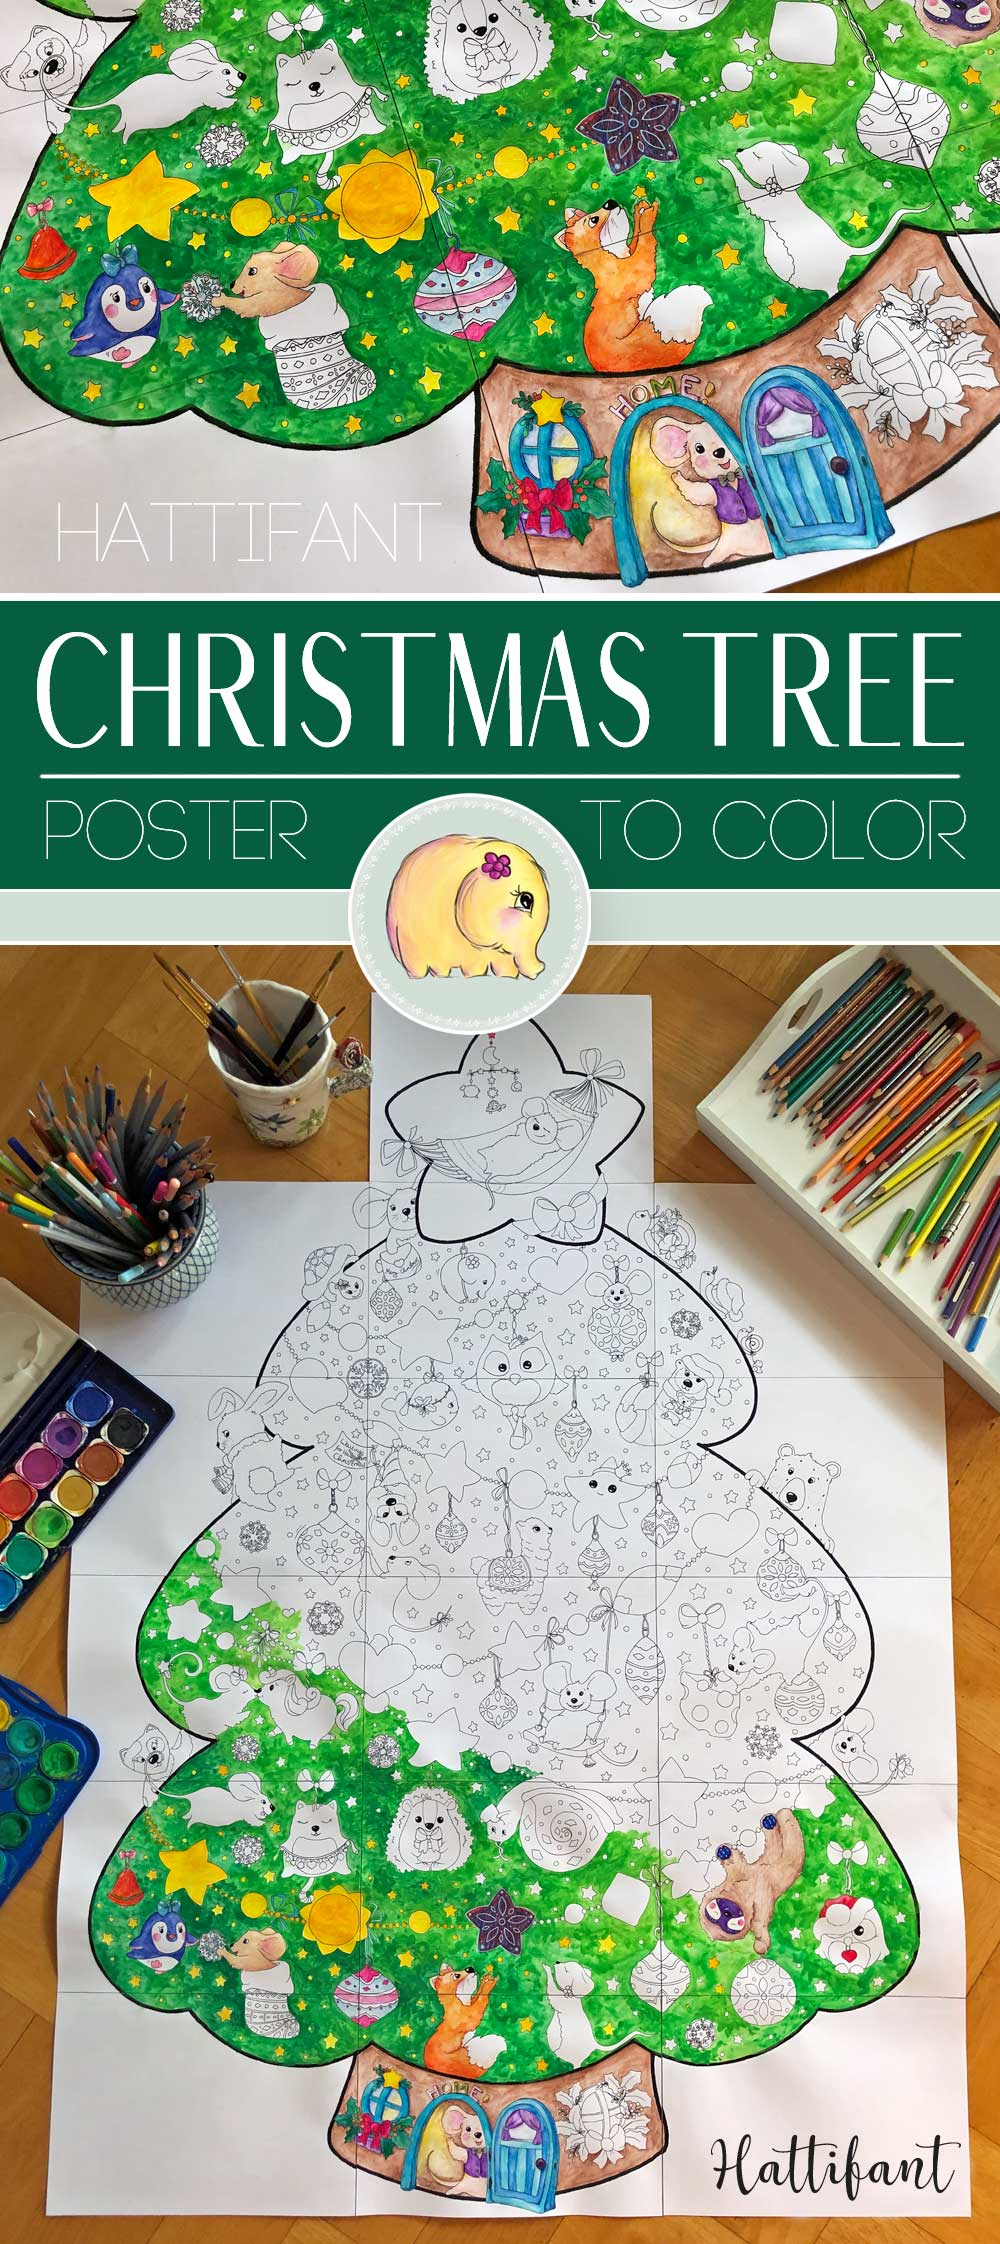 Giant Poster Christmas Tree Animal Cuties To Color Hattifant Christmas Tree Coloring Page Paper Christmas Tree Christmas Tree Poster